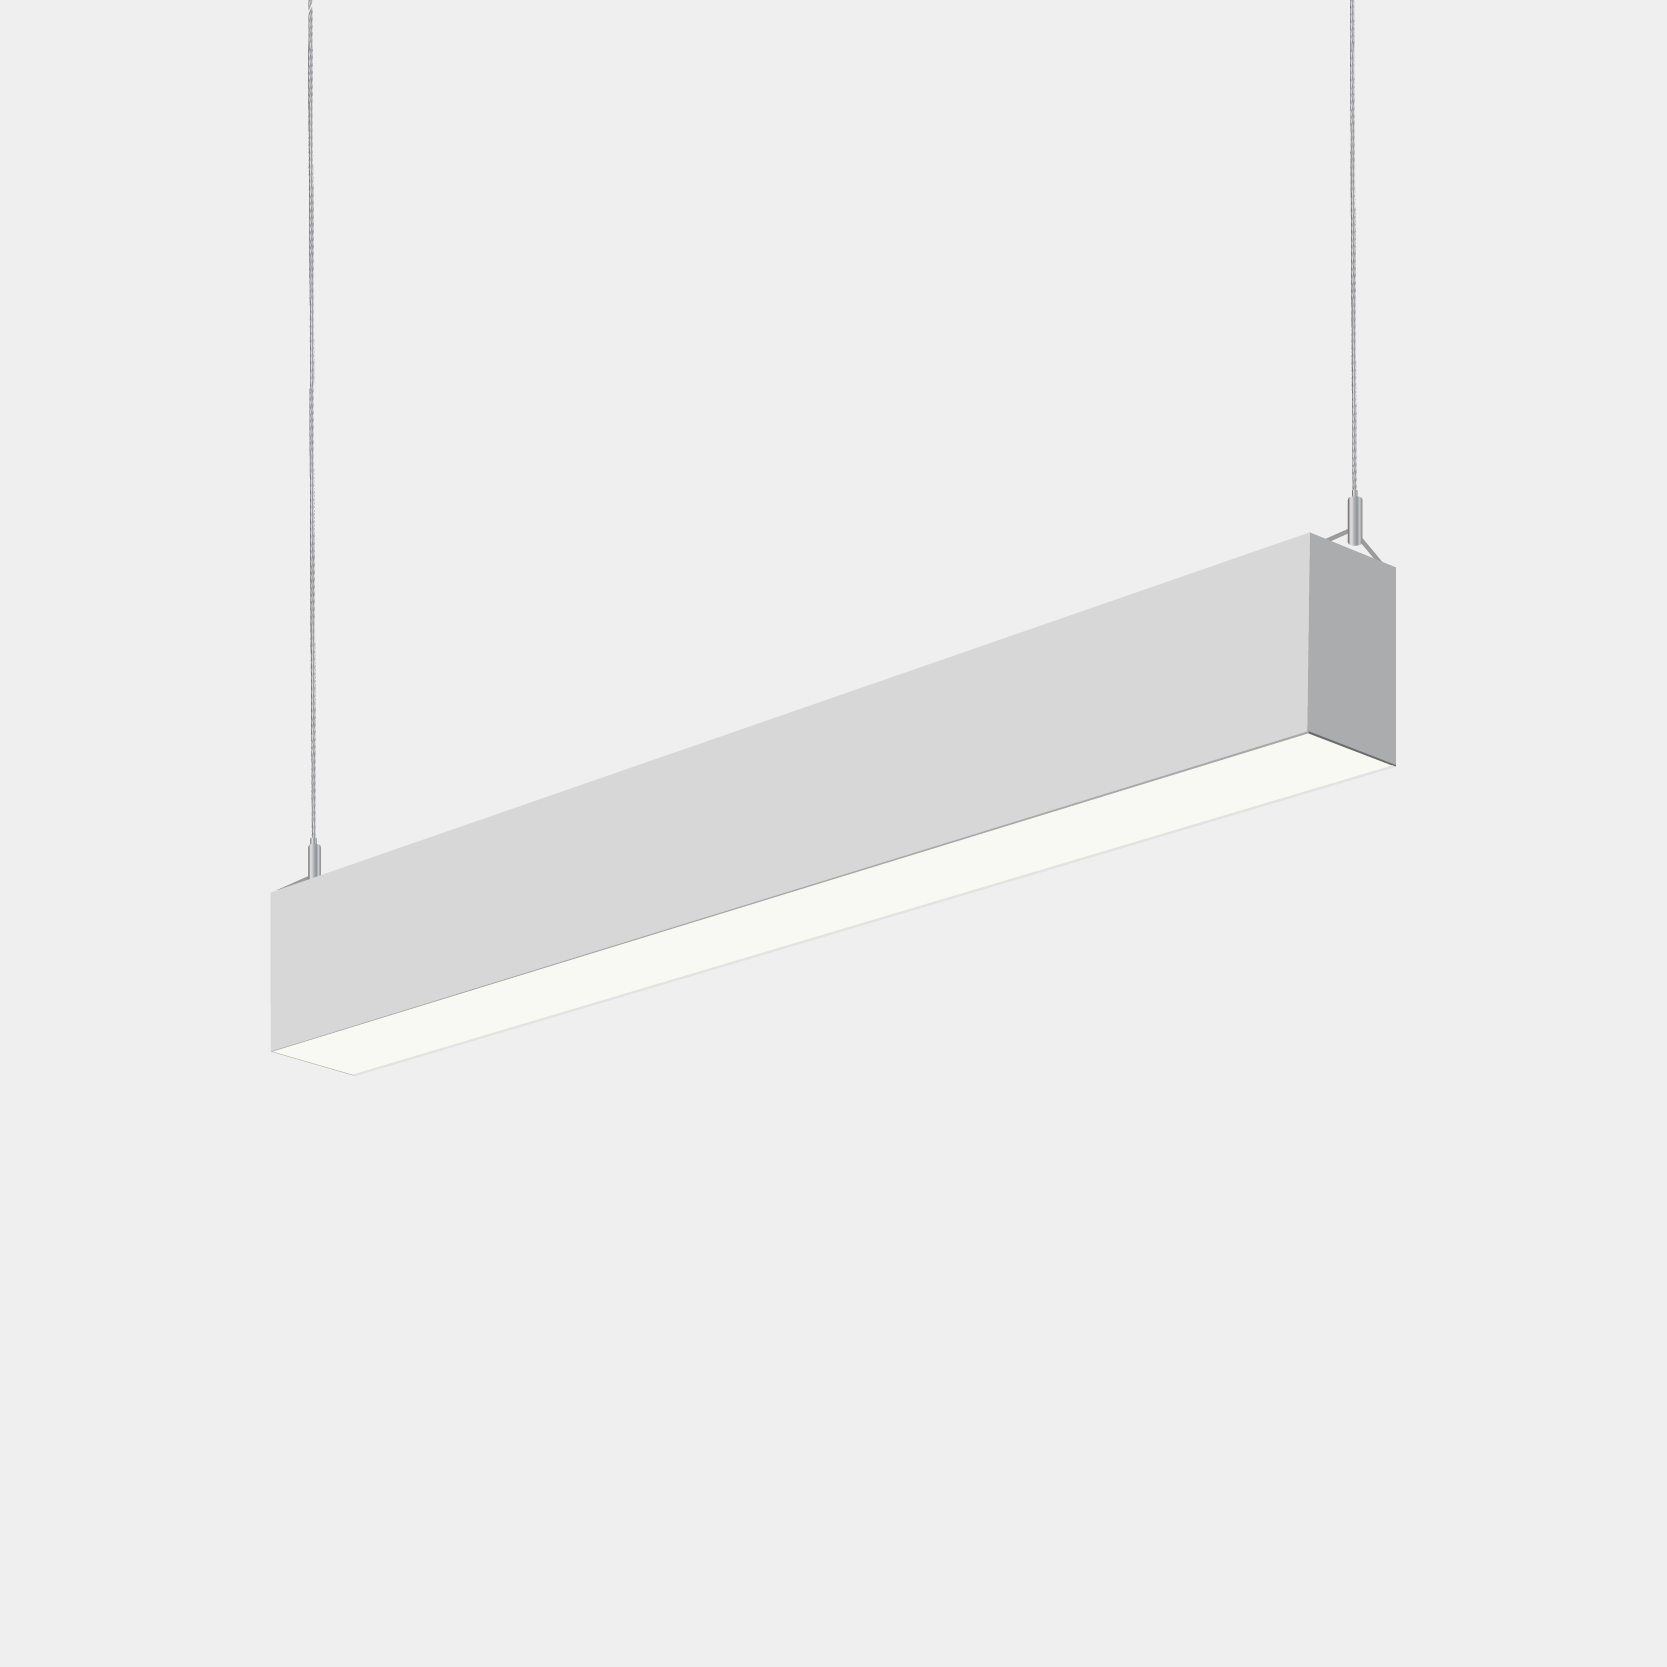 Alcon Lighting 12175 4 Beam 20 Series Architectural Led 4 Foot